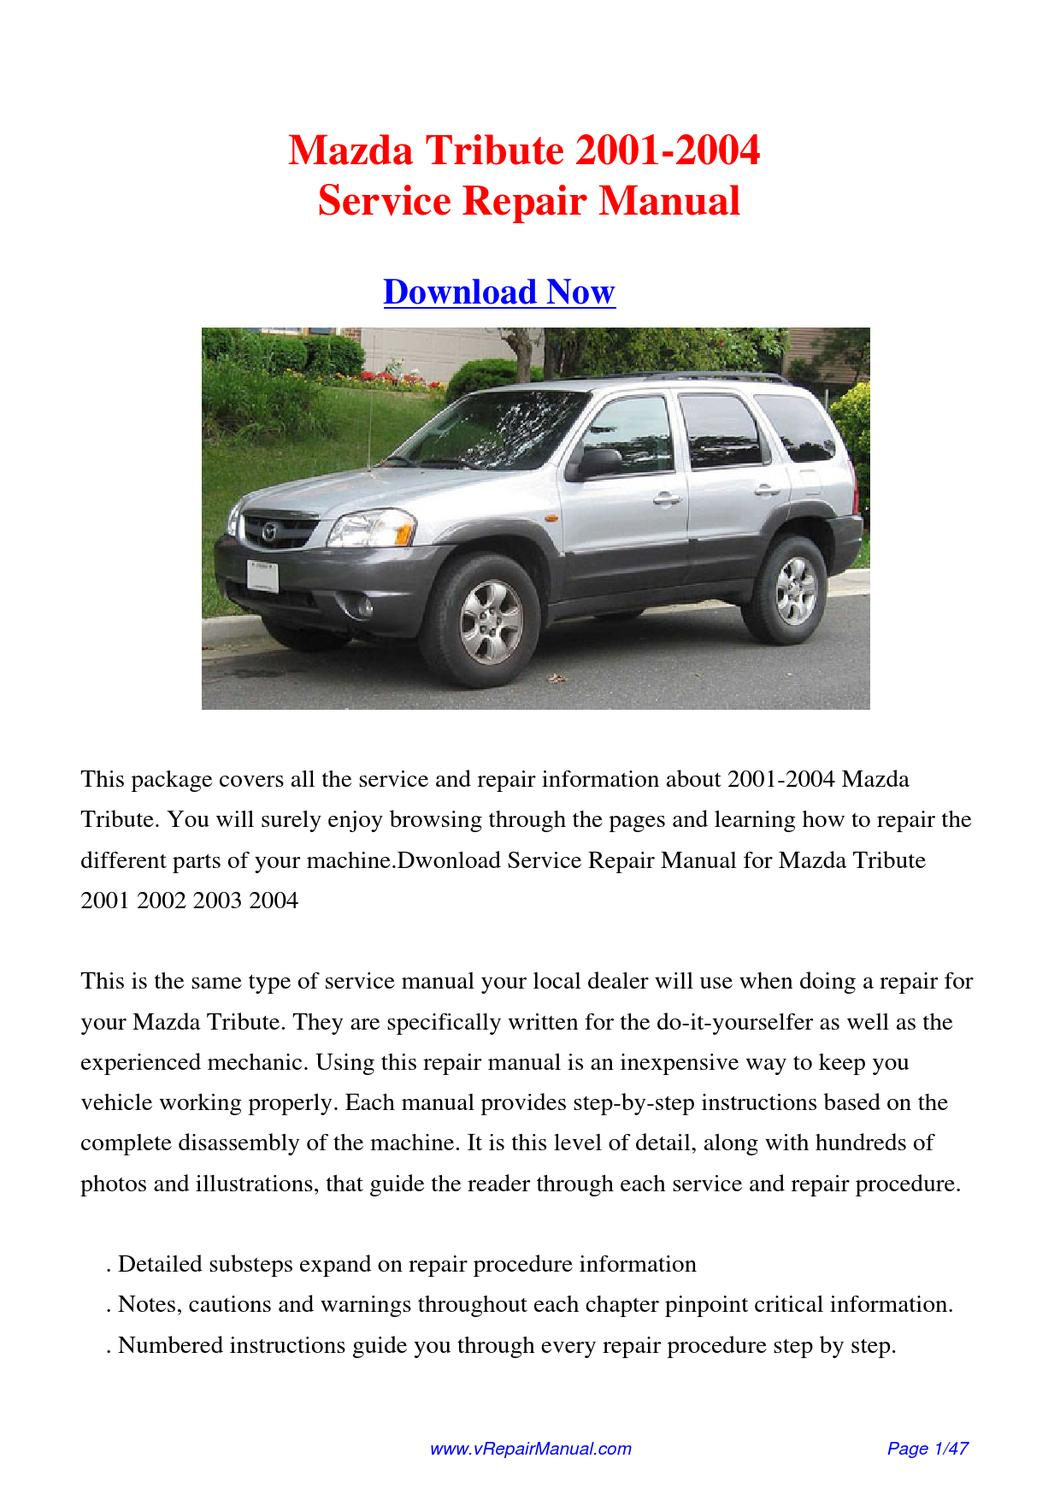 service manual 2003 mazda tribute manual down load. Black Bedroom Furniture Sets. Home Design Ideas